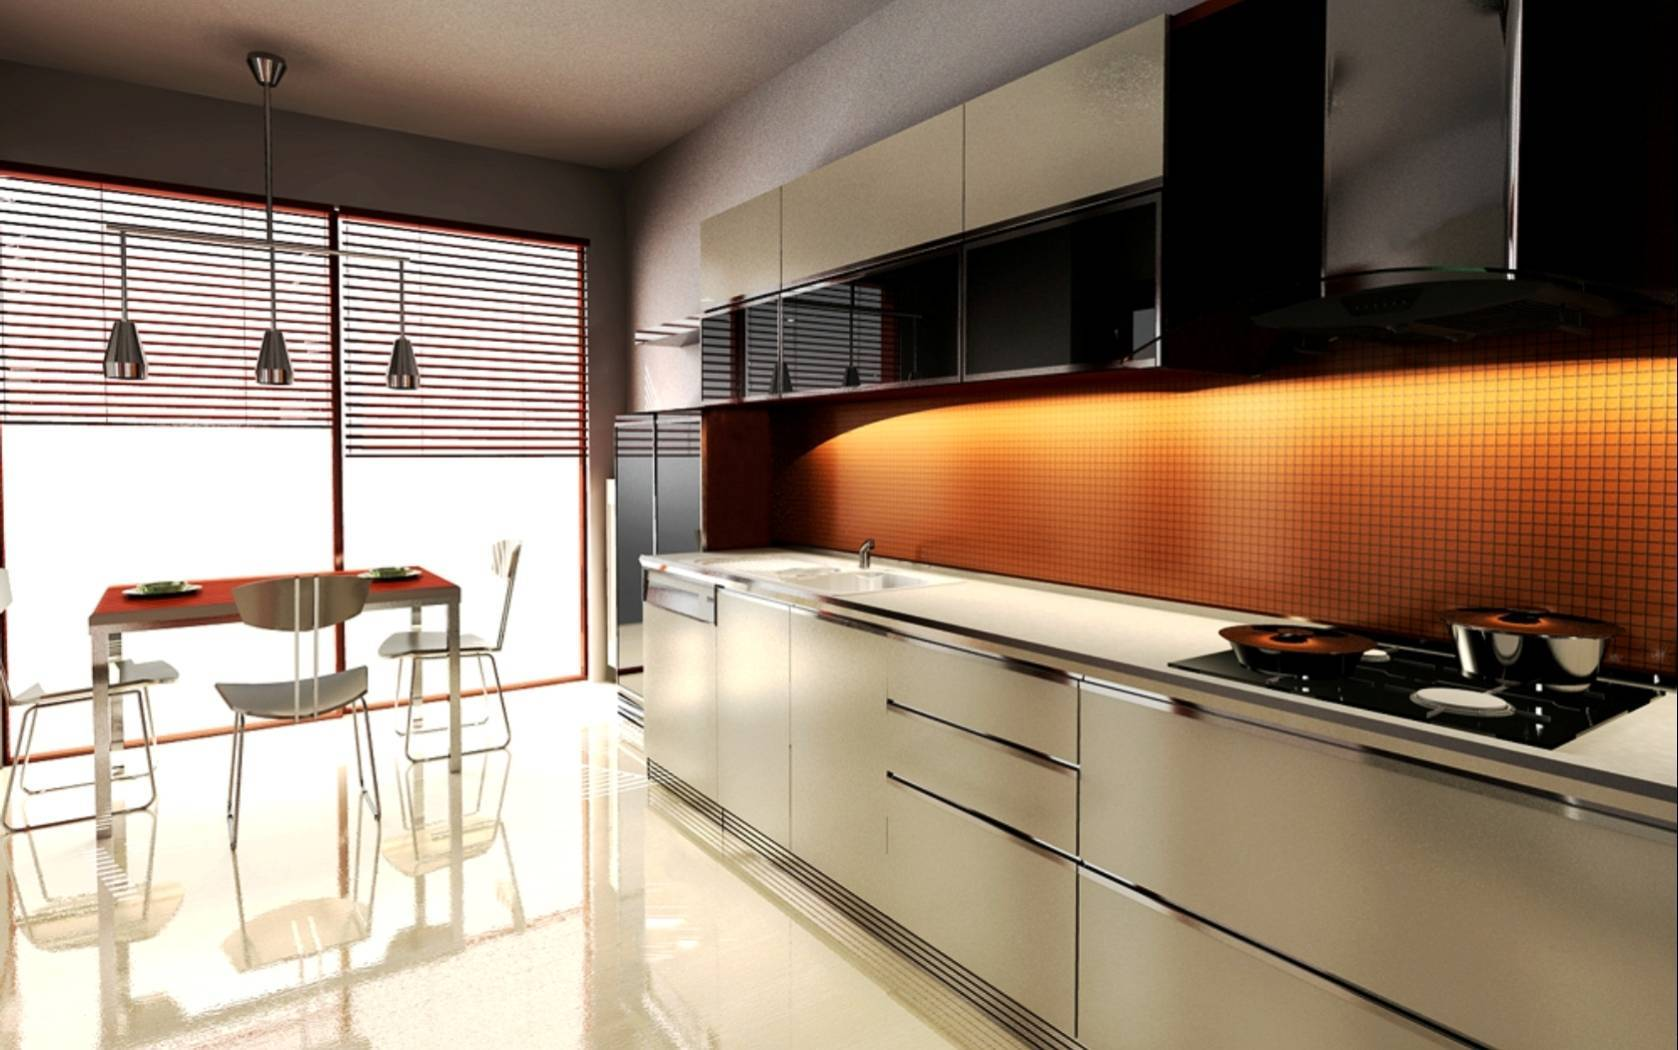 Kitchen Cabinets With Price In India 25 43 Latest Design Ideas Of Modular Kitchen Pictures